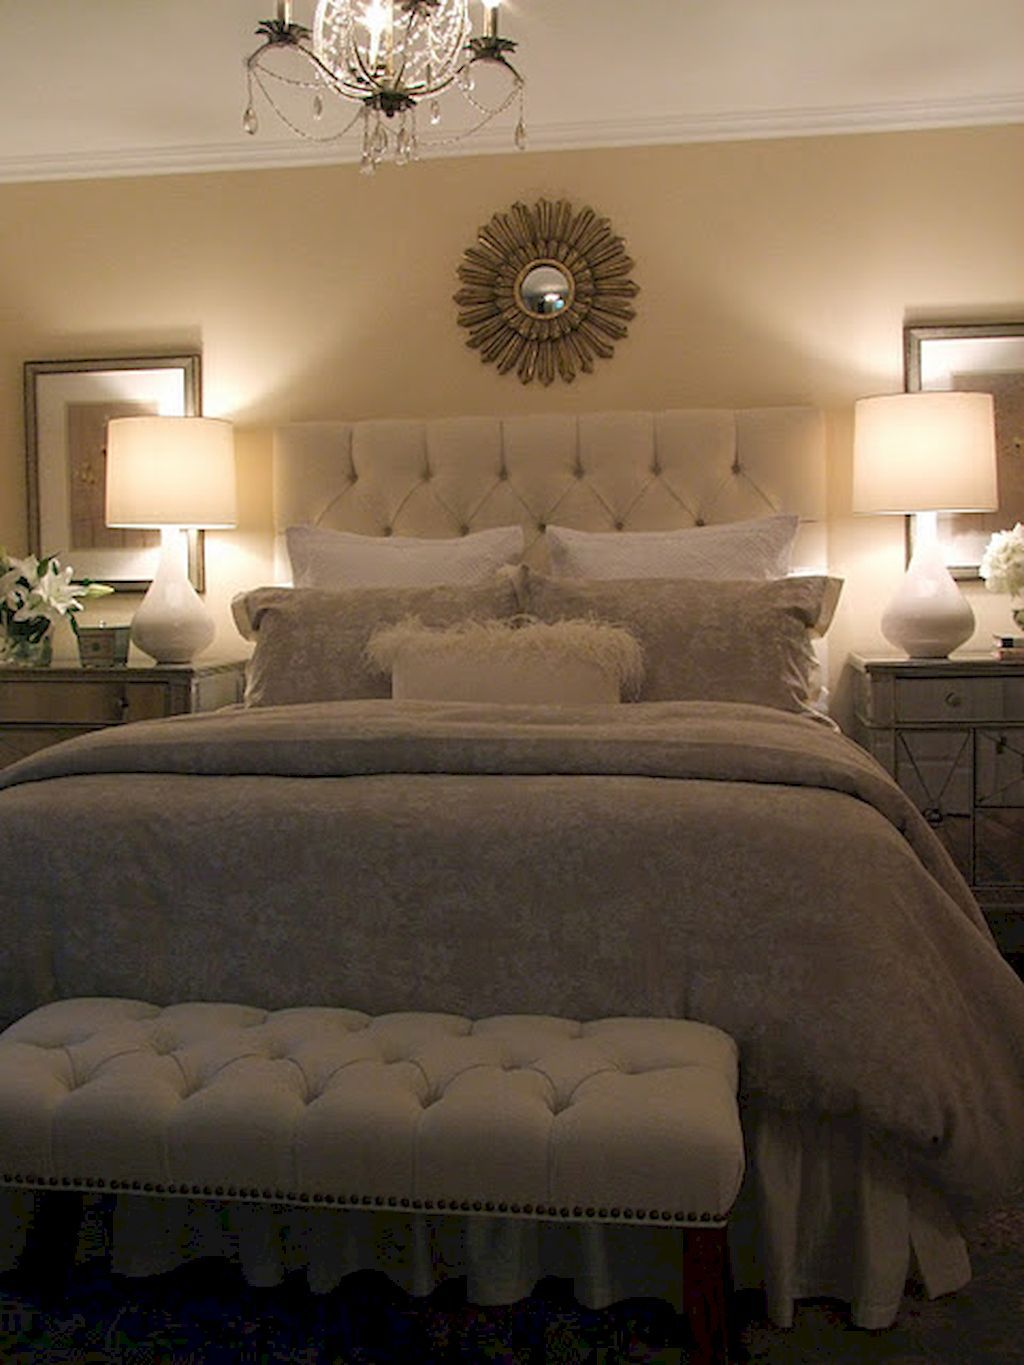 11 Beautiful Master Bedroom Decorating Ideas - Homevialand.com